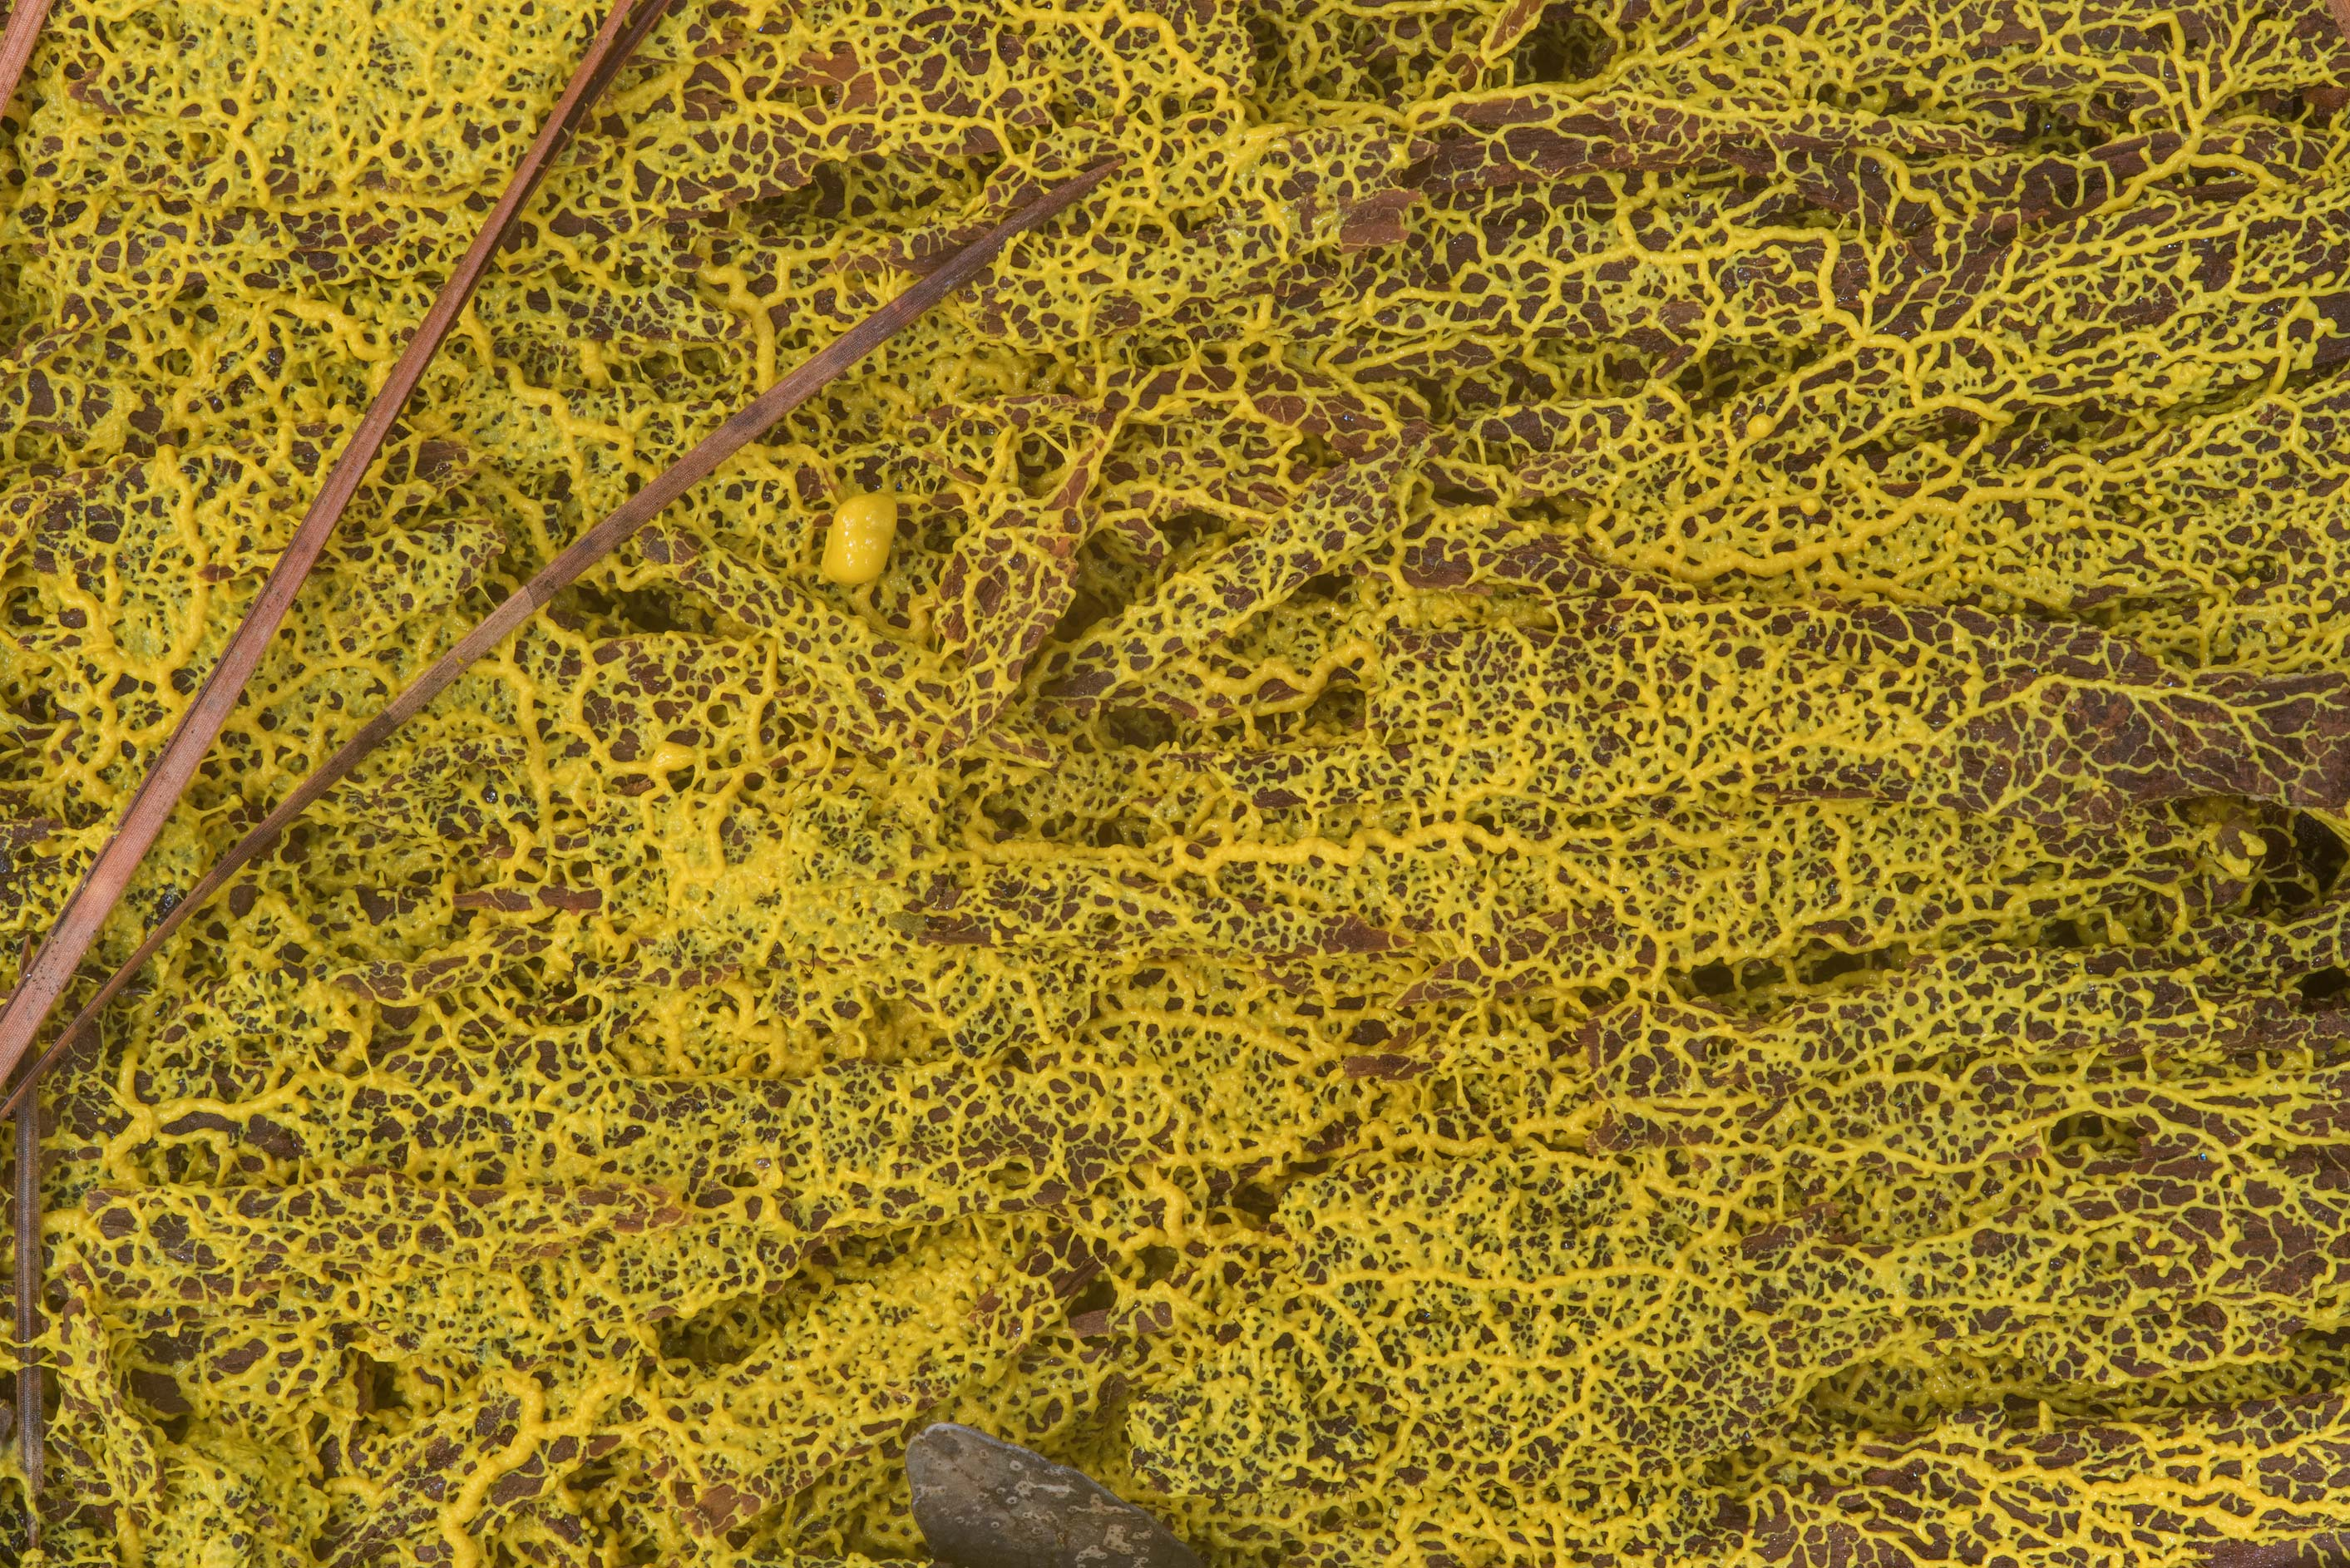 Close up of yellow netted slime mold on a rotten...National Forest. Richards, Texas